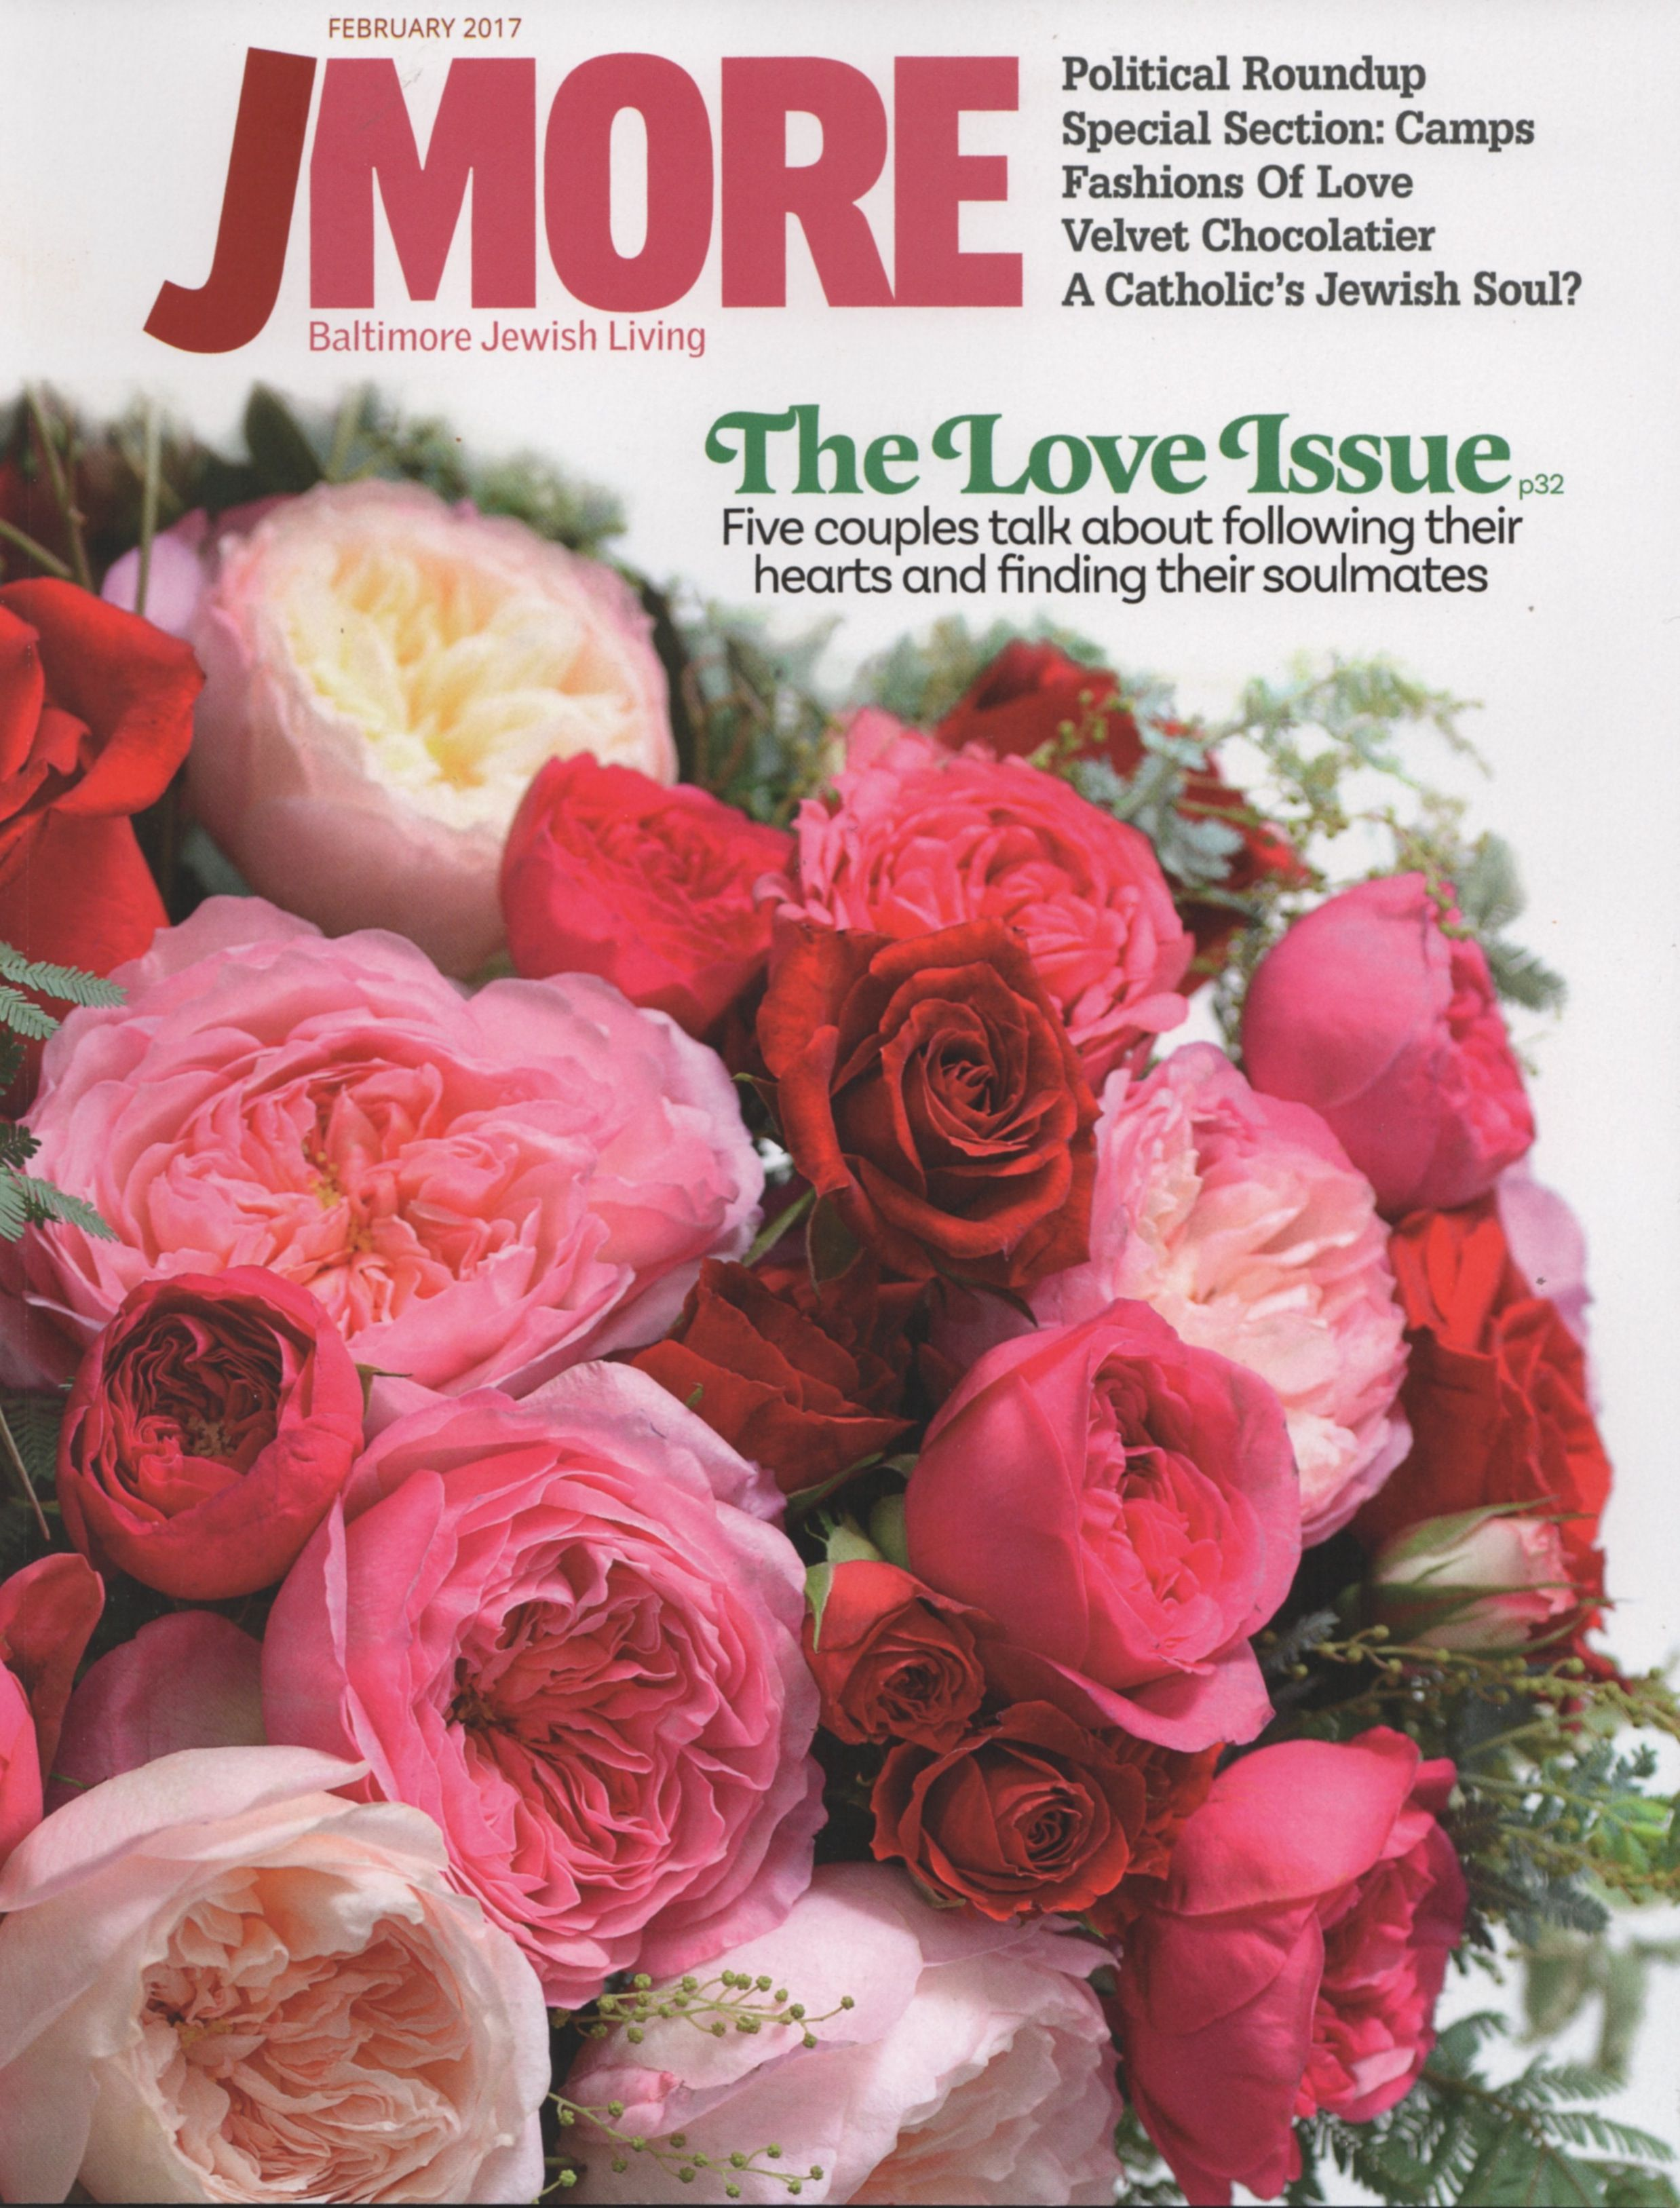 Jmore February 2017 Cover Photo By Evan Cohen Flowers Arranged